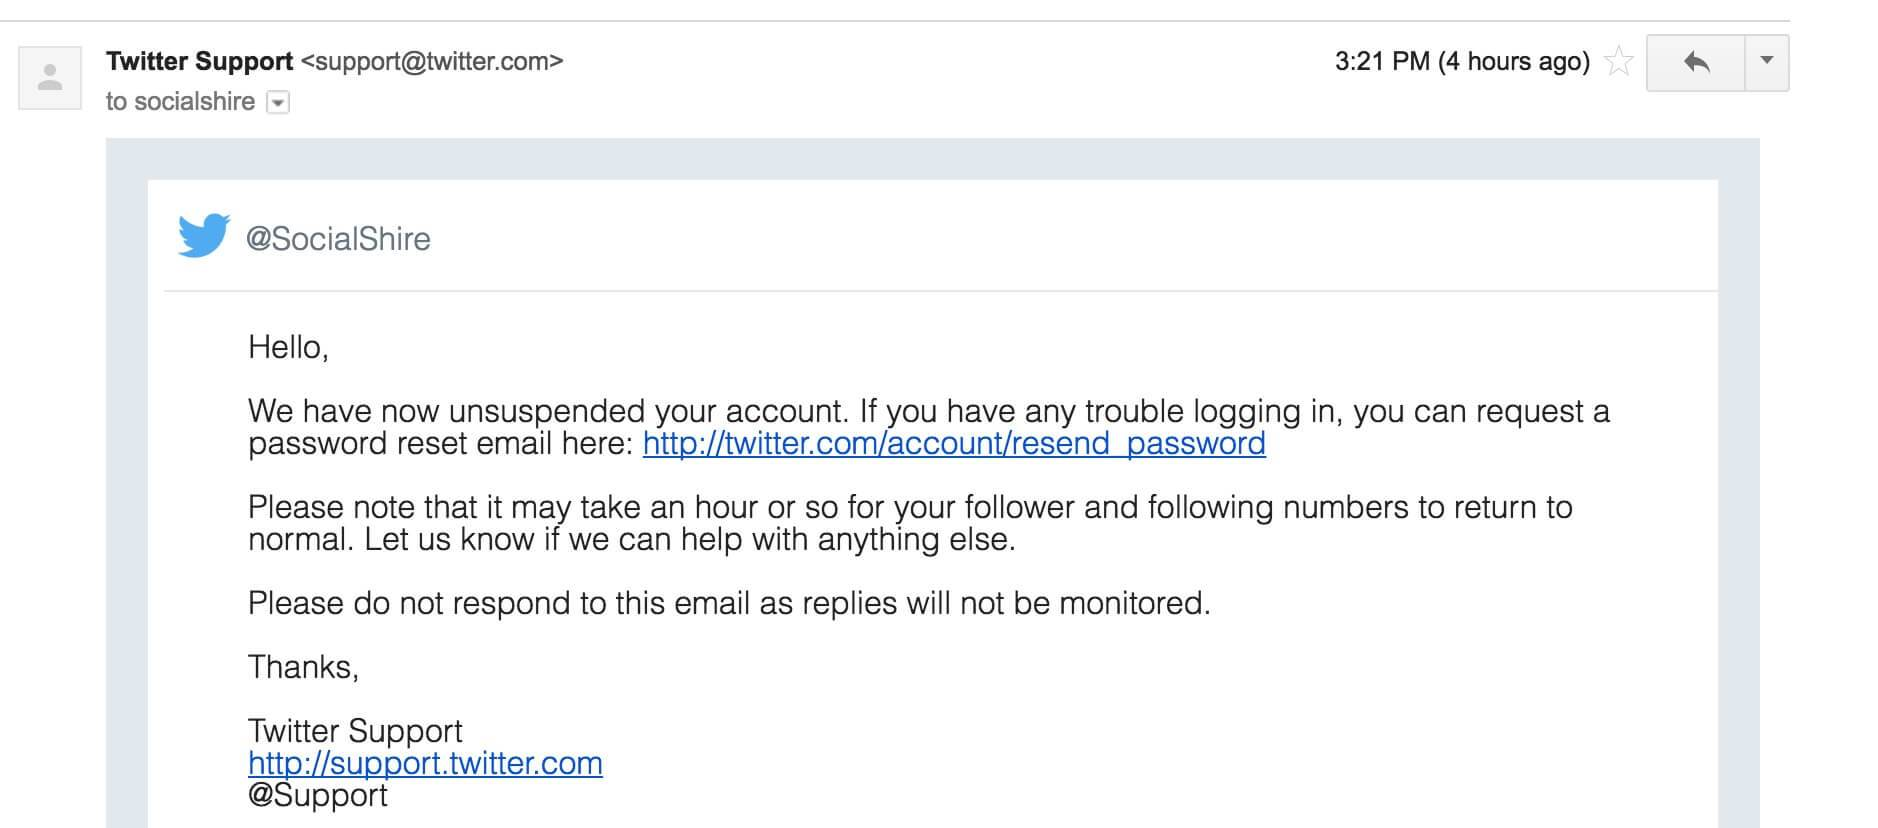 Twitter Support Reply Account Unsuspended